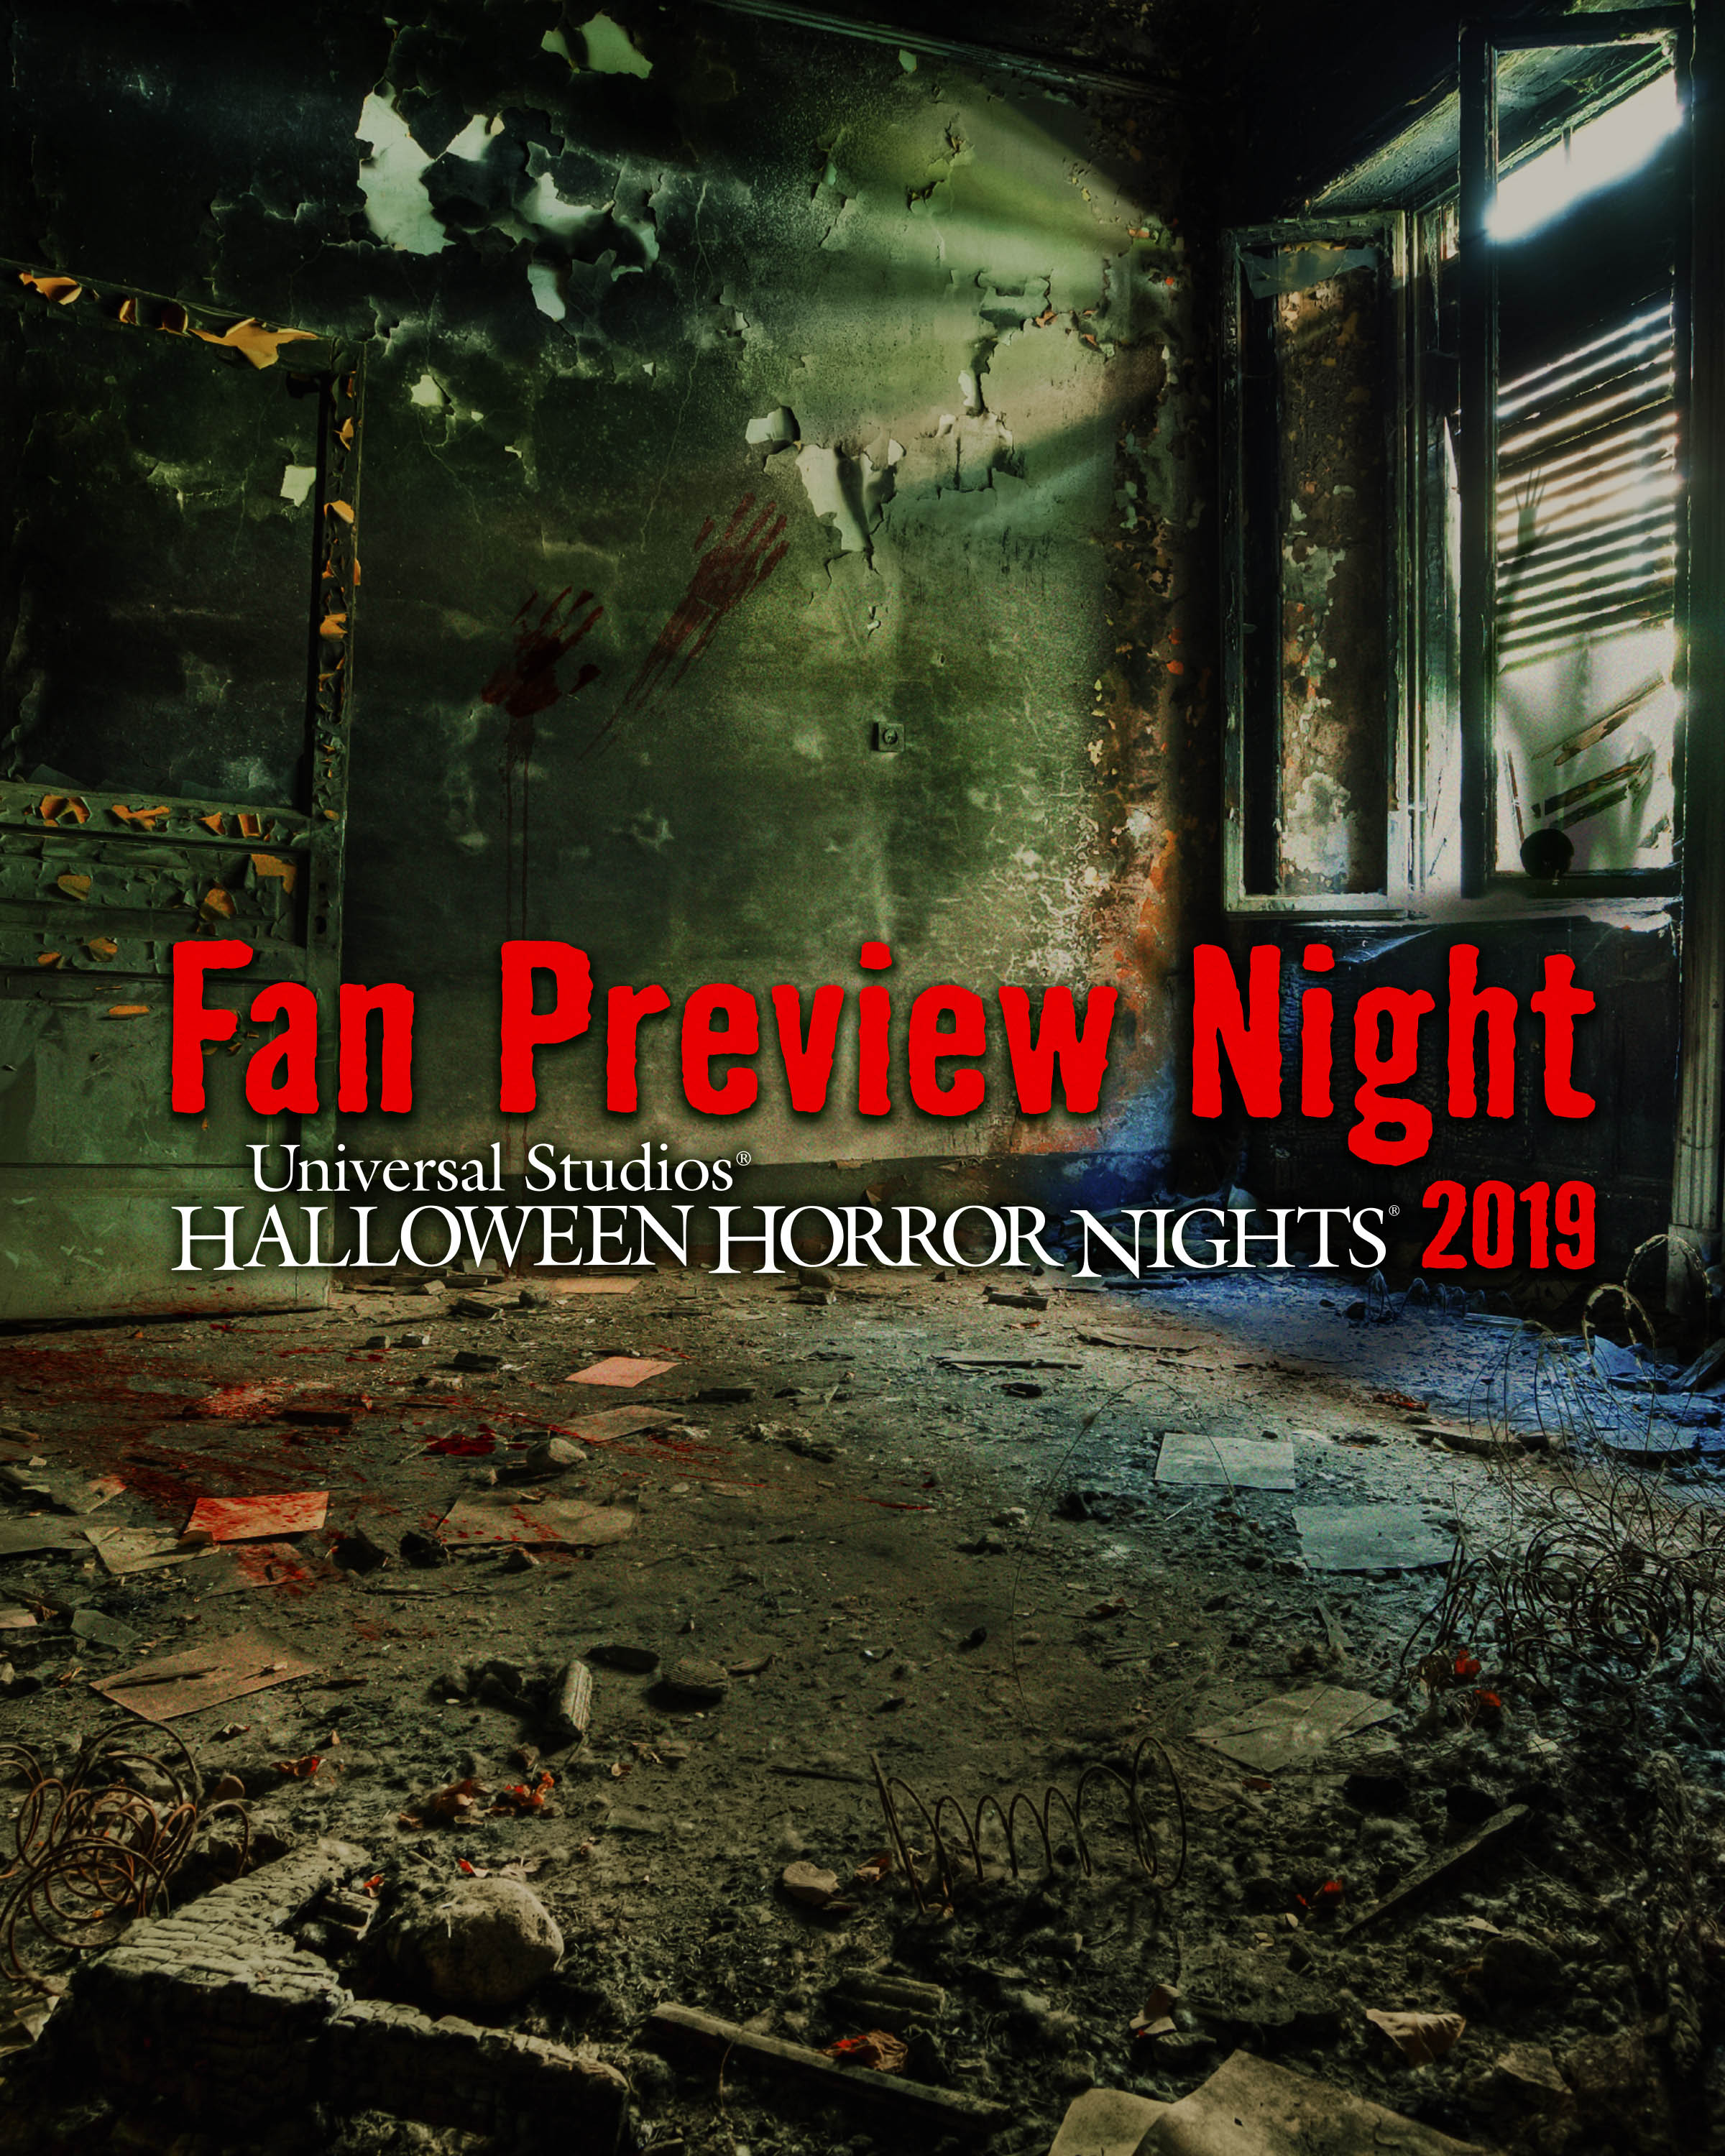 Universal Studios Halloween Horror Nights 2019.Hhn Hollywood Debuts Fan Preview Night For 2019 Theme Park Duo